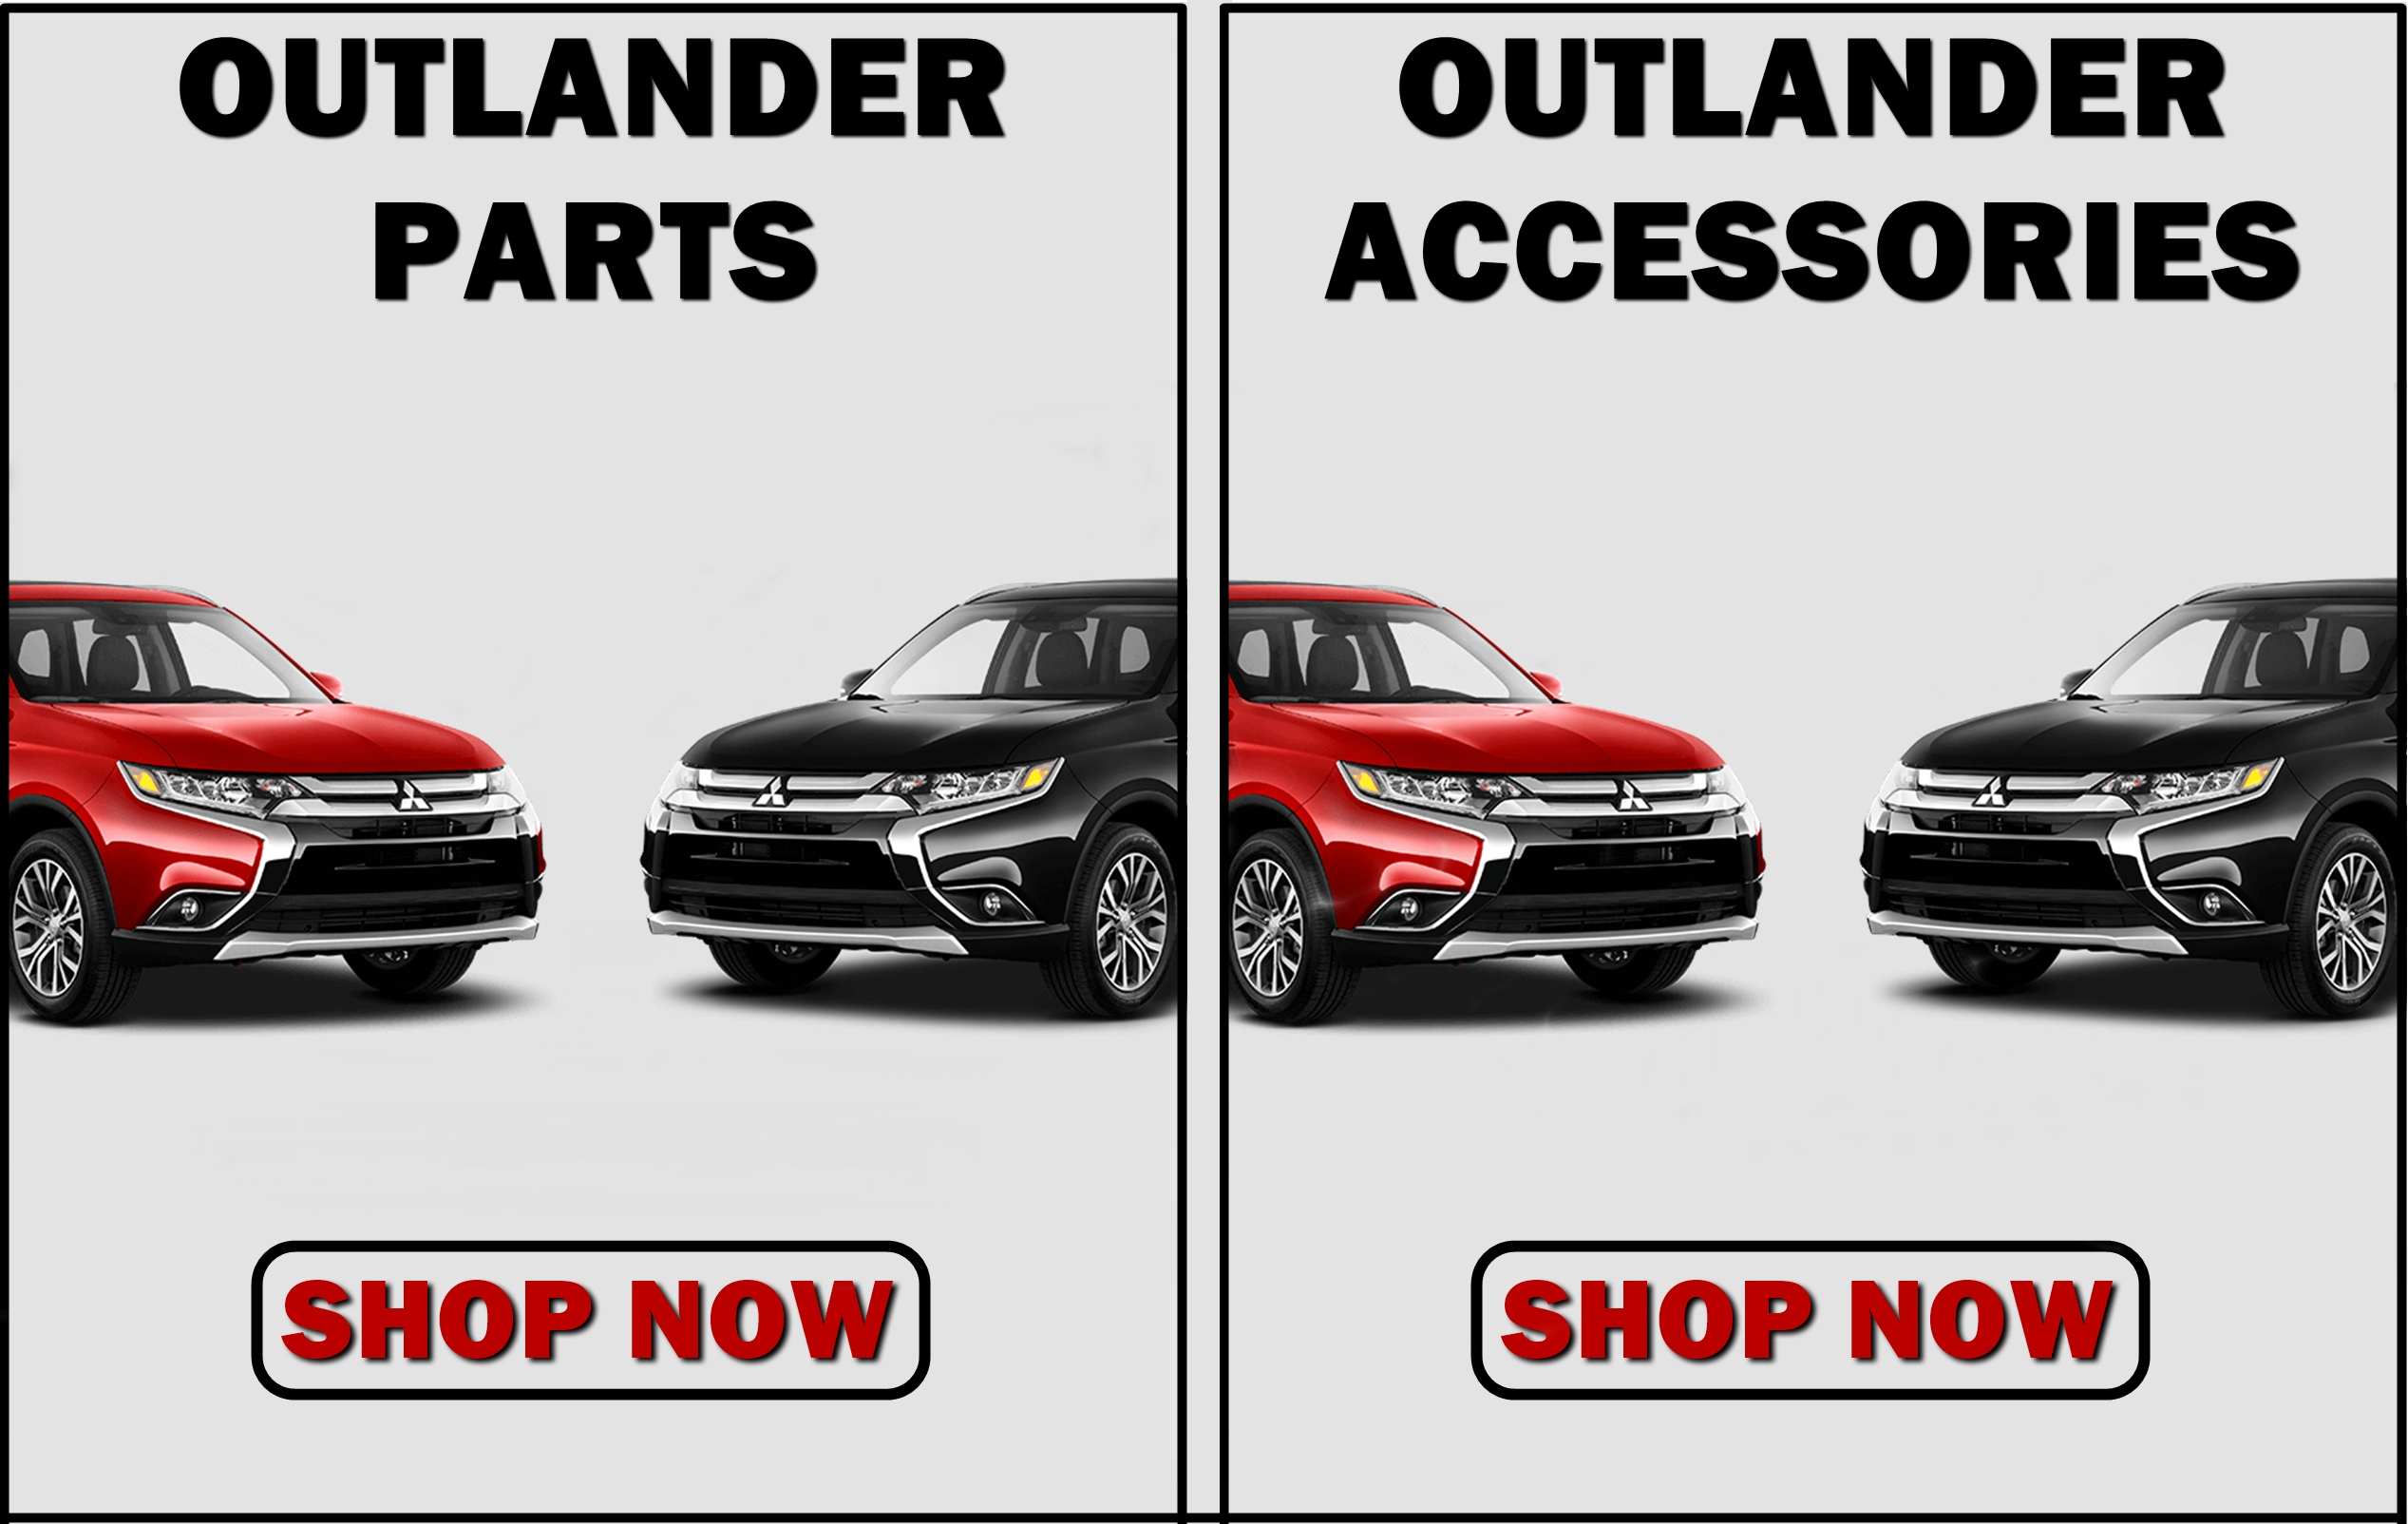 in mitsubishi oem texas availability parts pricing dealer partsorderform weatherford auto